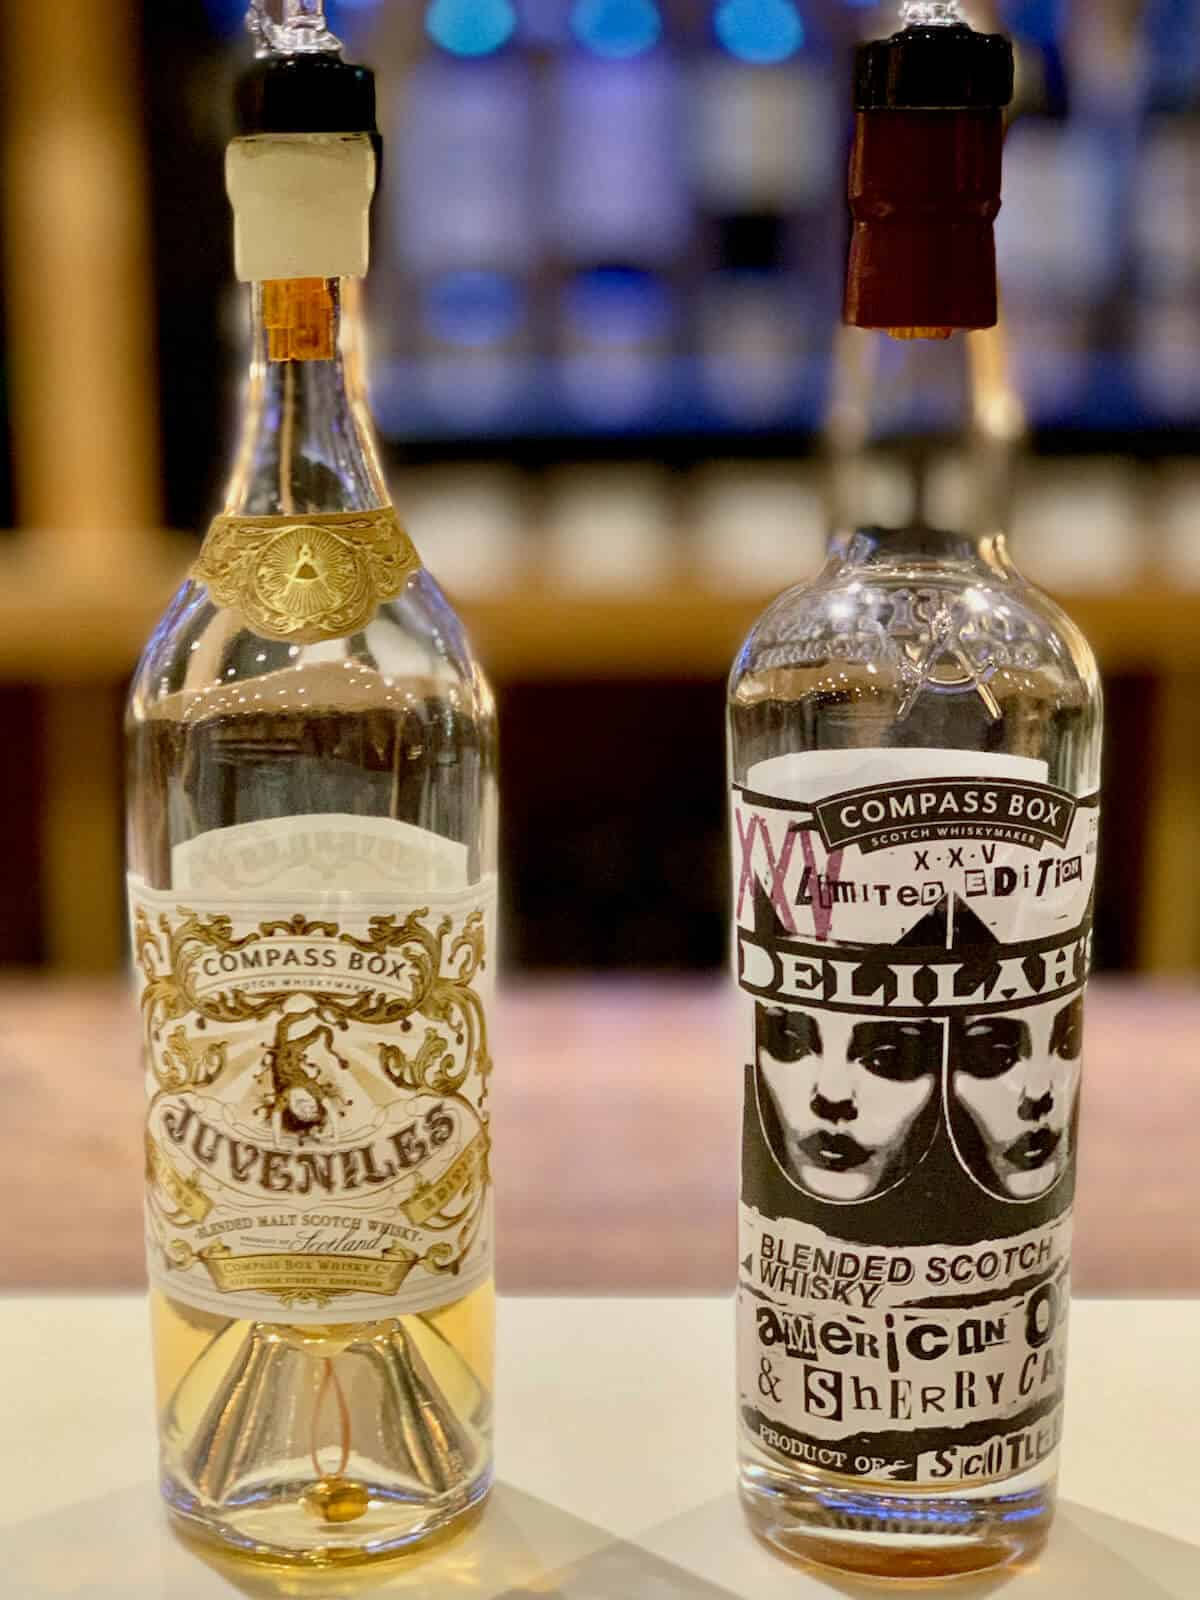 Compass Box Blended Scotch Juveniles and Delilah 25 in bottles on a counter.